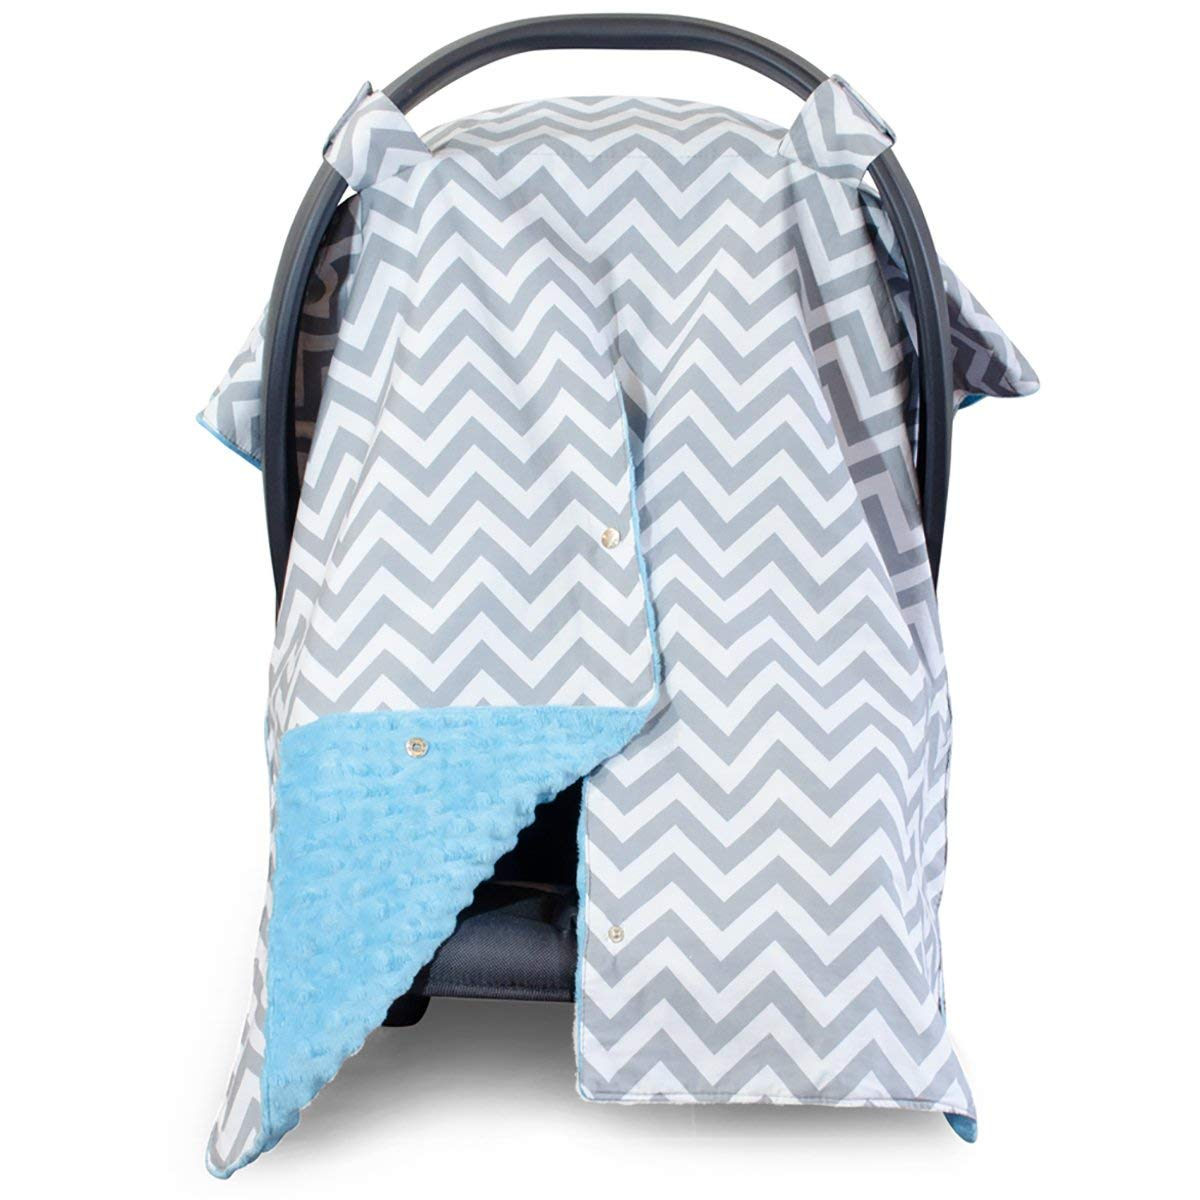 Amazon Com 2 In 1 Carseat Canopy And Nursing Cover Up With Peekaboo Opening Large Infant Car Seat Canopy For Girl Or Boy Best Baby Shower Gift For Breastfeeding Moms